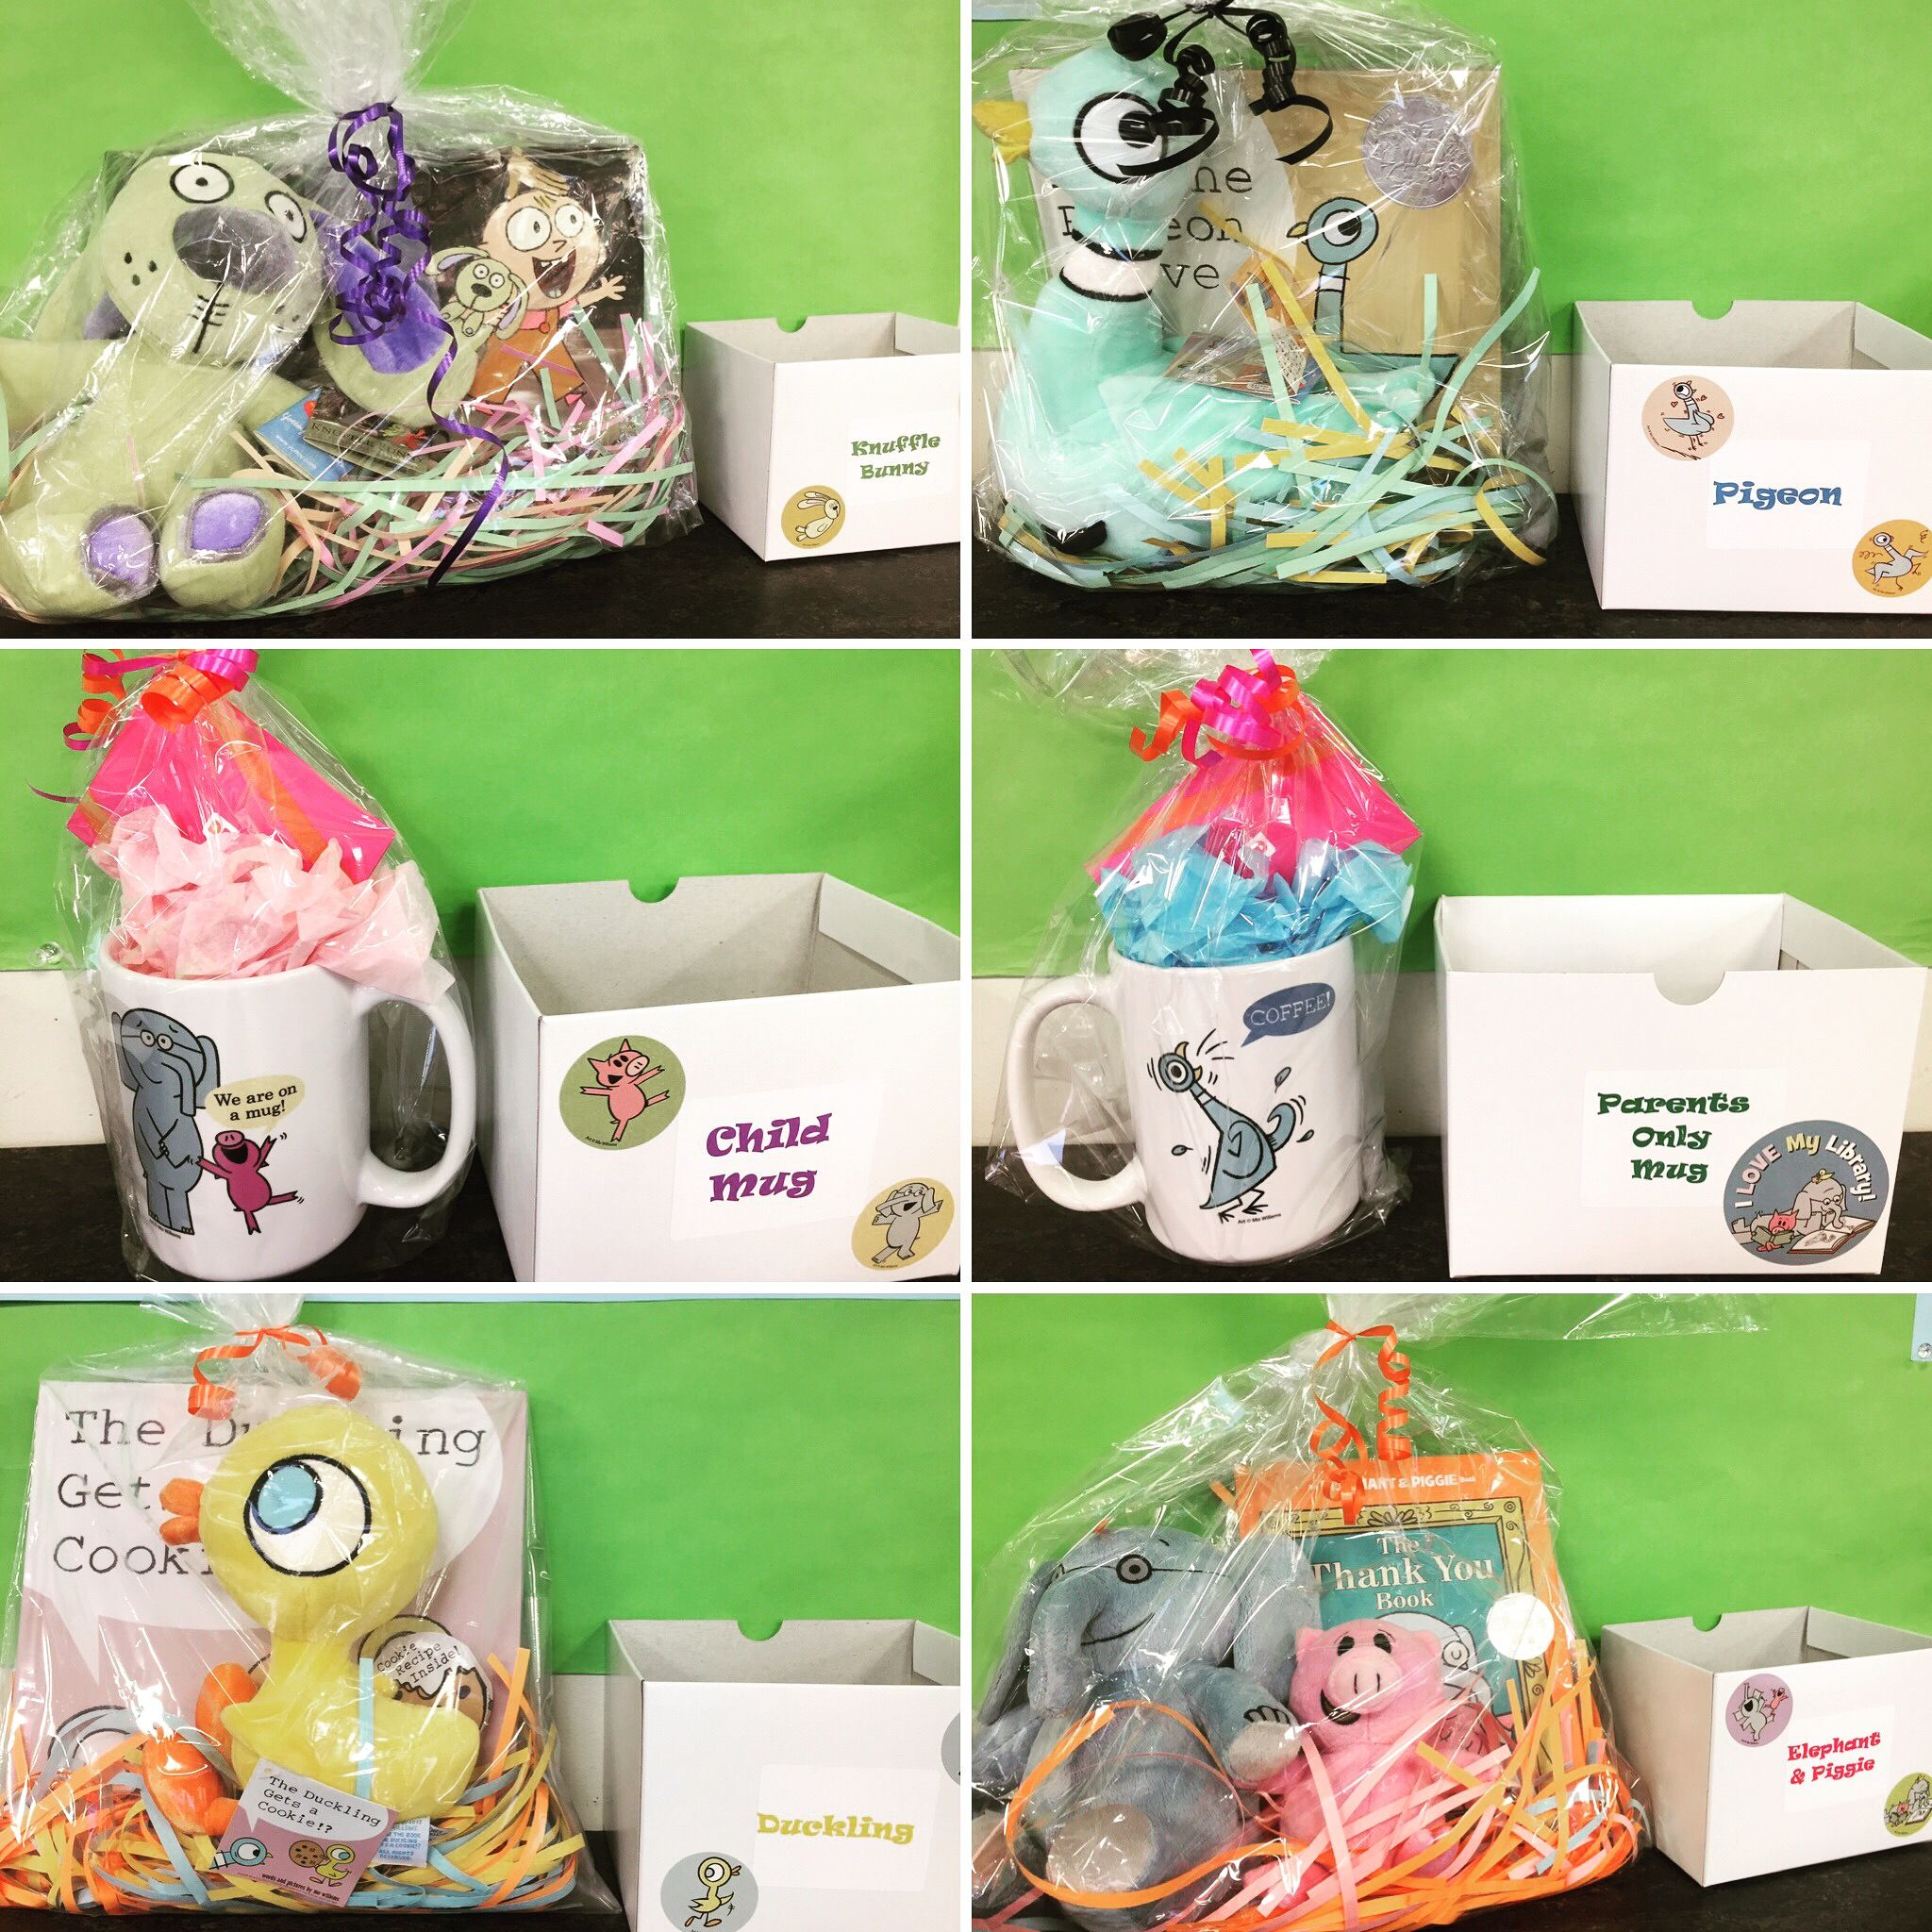 Check out these Mo Willems raffle prizes! Books, stuffed animals, and mugs w/ Dunkin' Donuts gift cards! As long as your kid is signed up for Winter Reading, they can put in for a raffle prize each week!